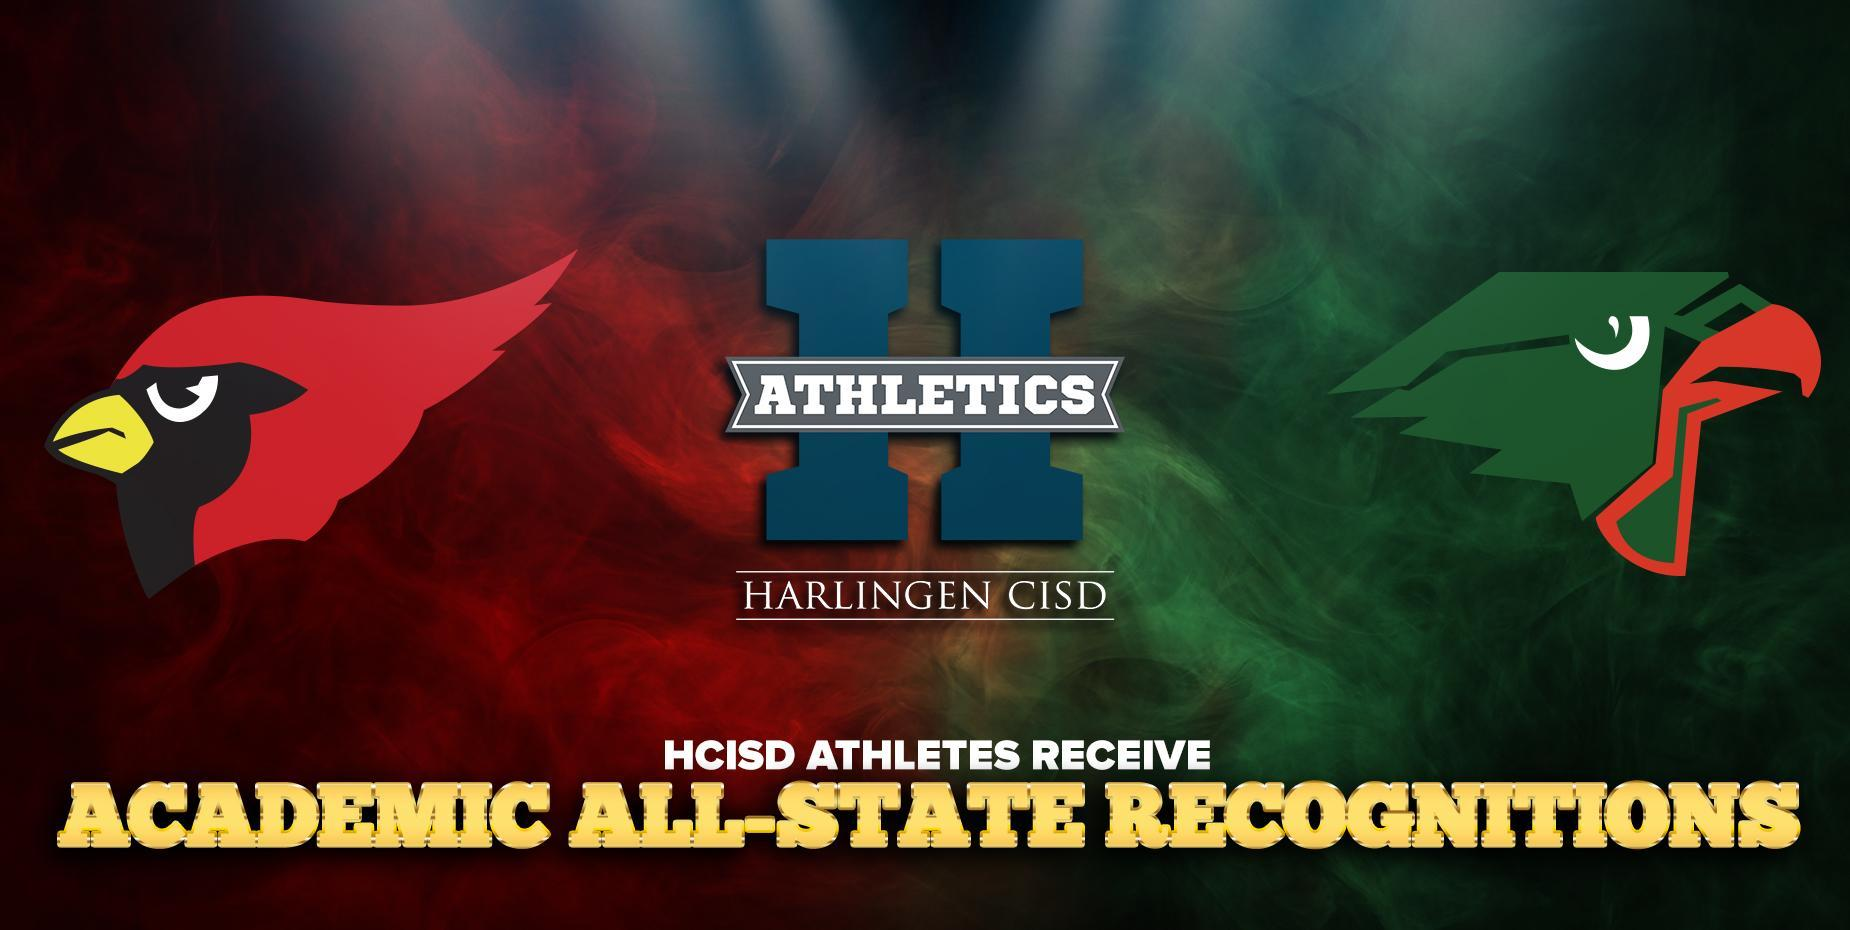 HCISD athletes receive Academic All-State recognitions